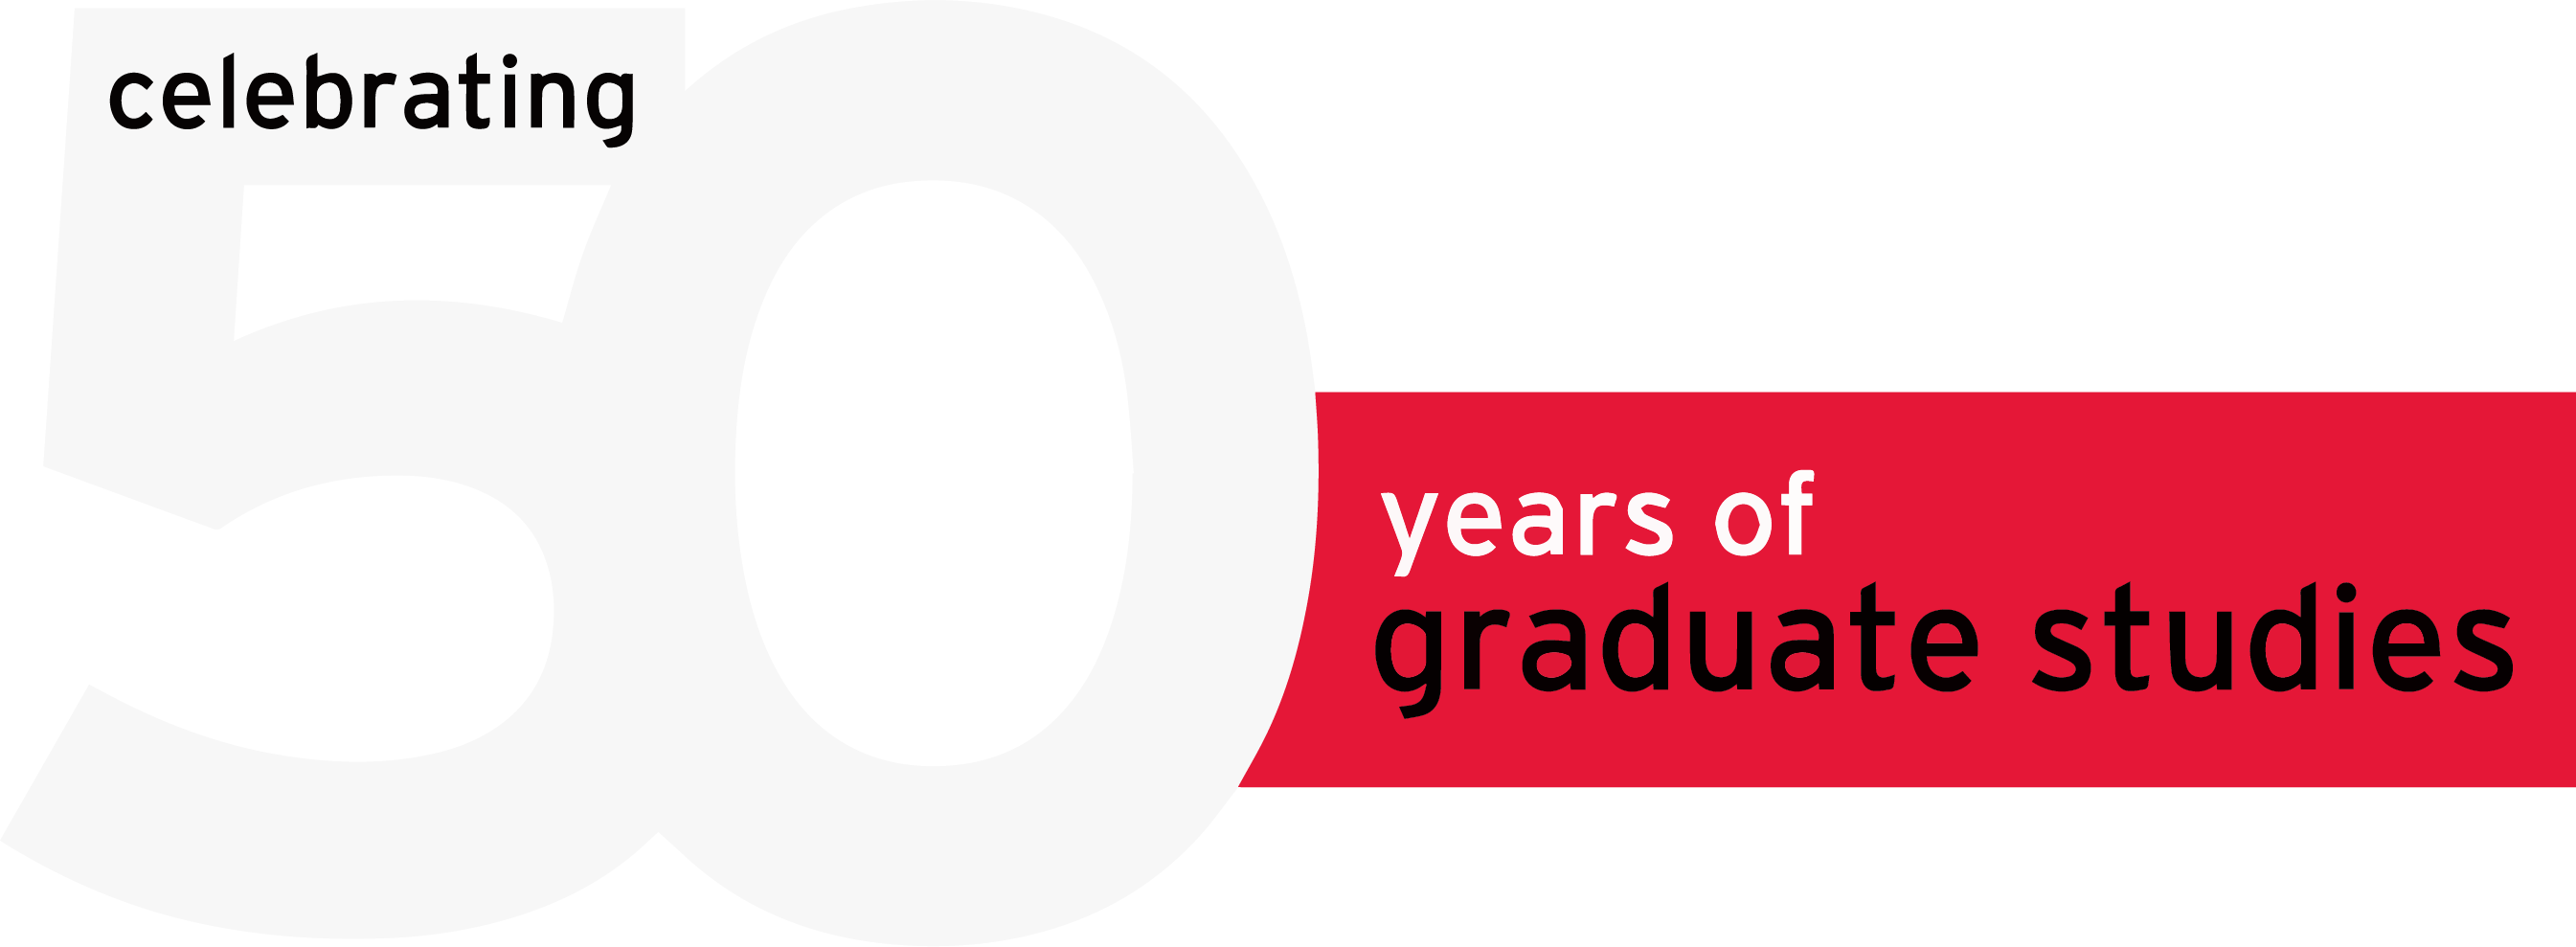 The logo for Chloe's 50 Years of Graduate Studies project - a large numberset five-zero.